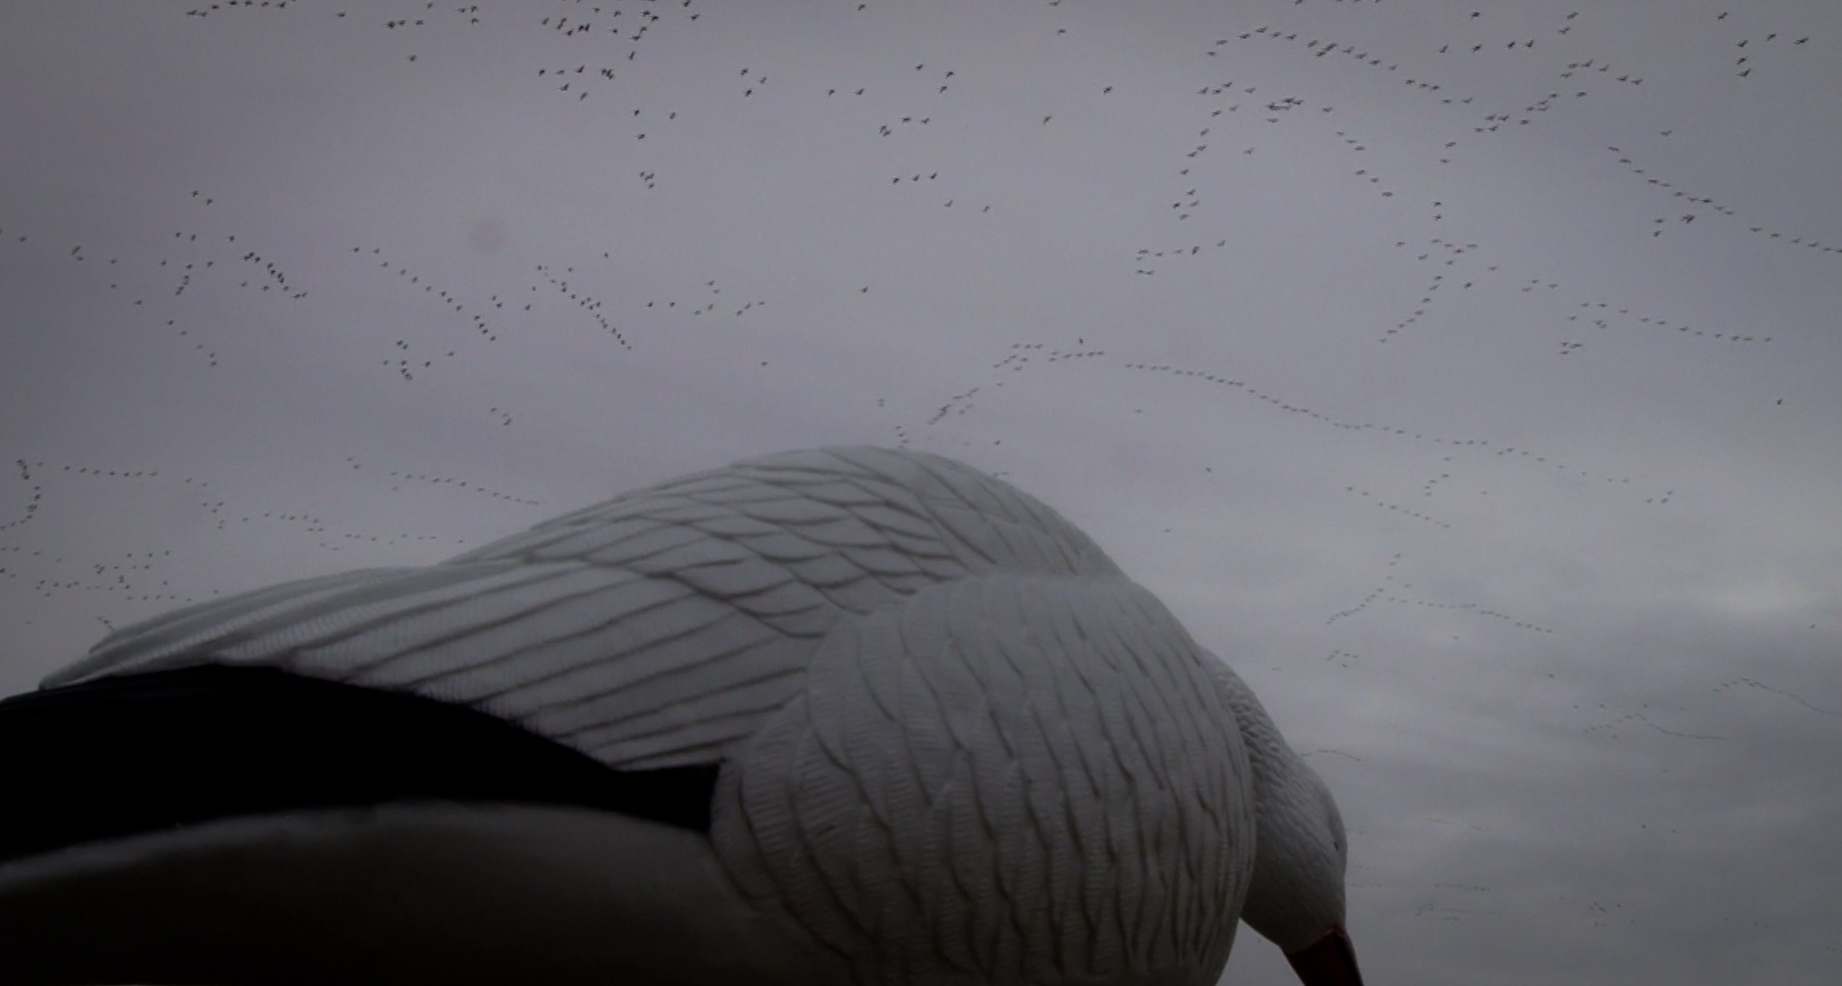 Snow Goose Migration February 14, 2014